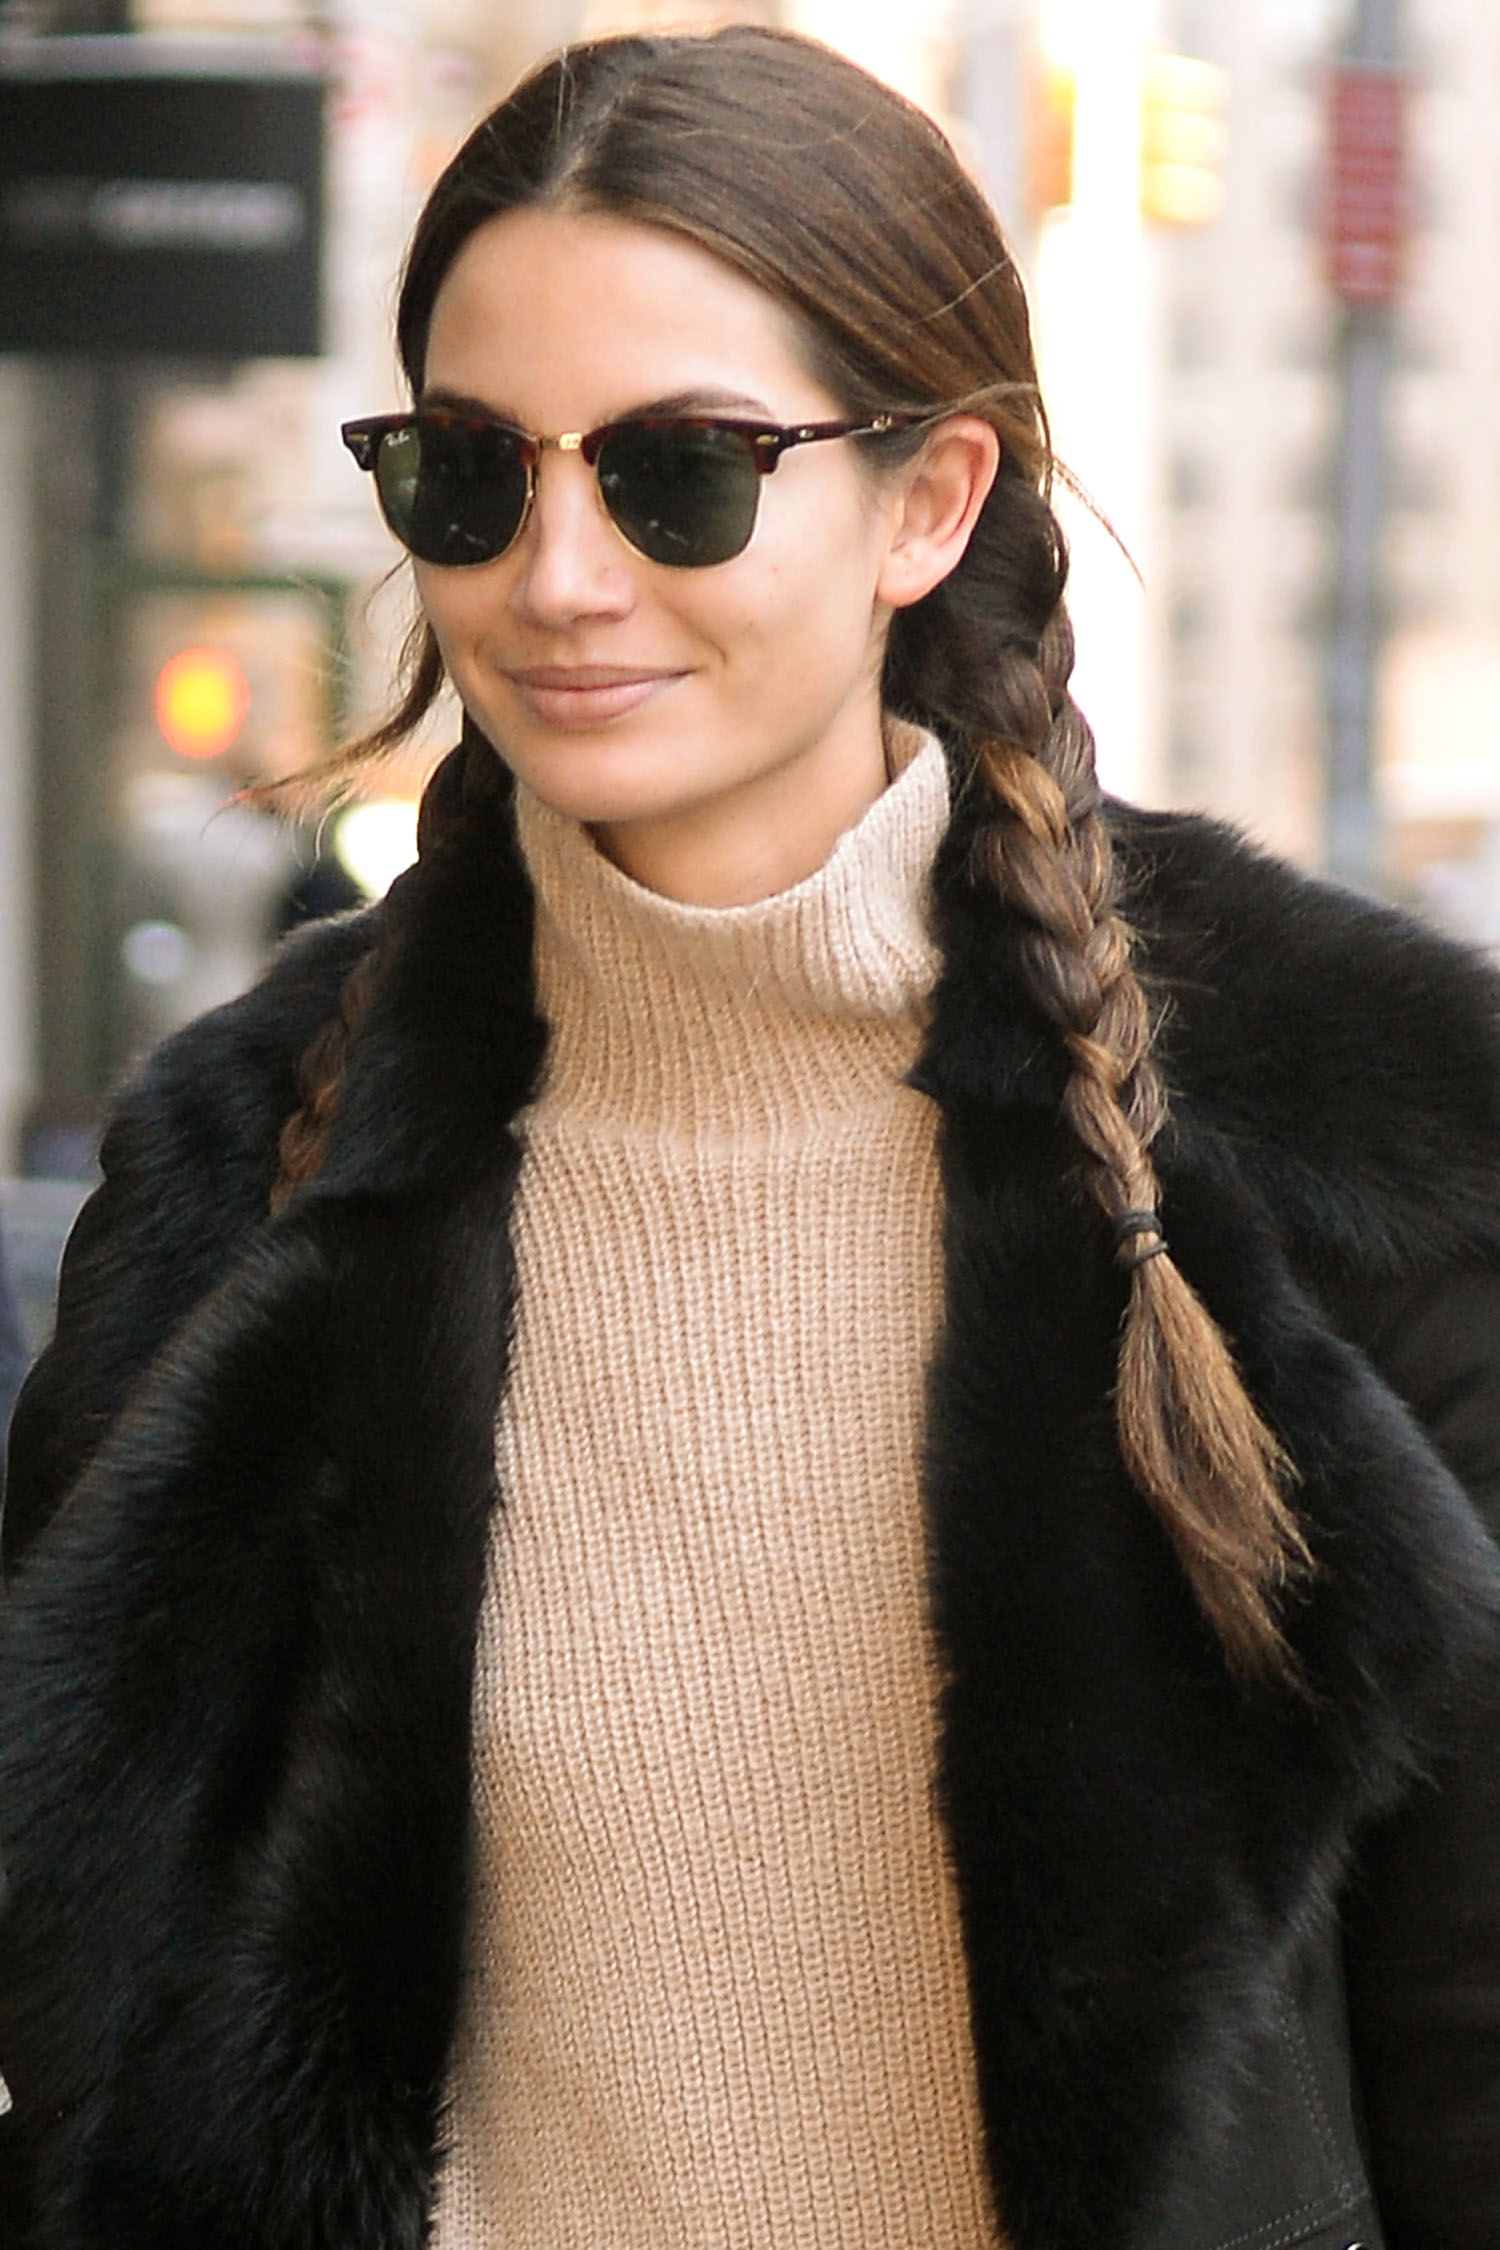 Beauty Street Style: Side Braids andSunglasses